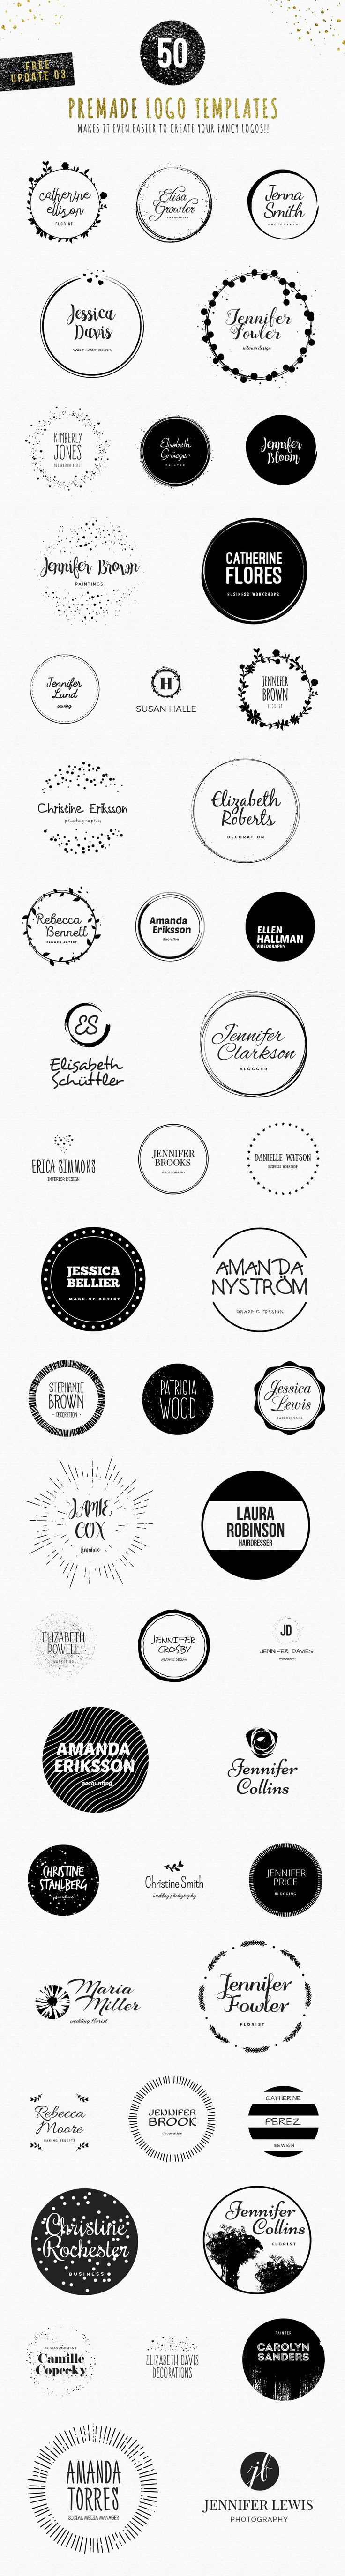 Feminine Logo Creator Circle Edition: 240 circle shaped decorative vector elements + 60 name based text combinations makes it total of 14,400+ possible logo variations! All shapes and fonts are made with the latest feminine trends in mind. Just choose your favorites, mix them up and add your own perfect textures to make a glamorous logos for yourself or your customers!